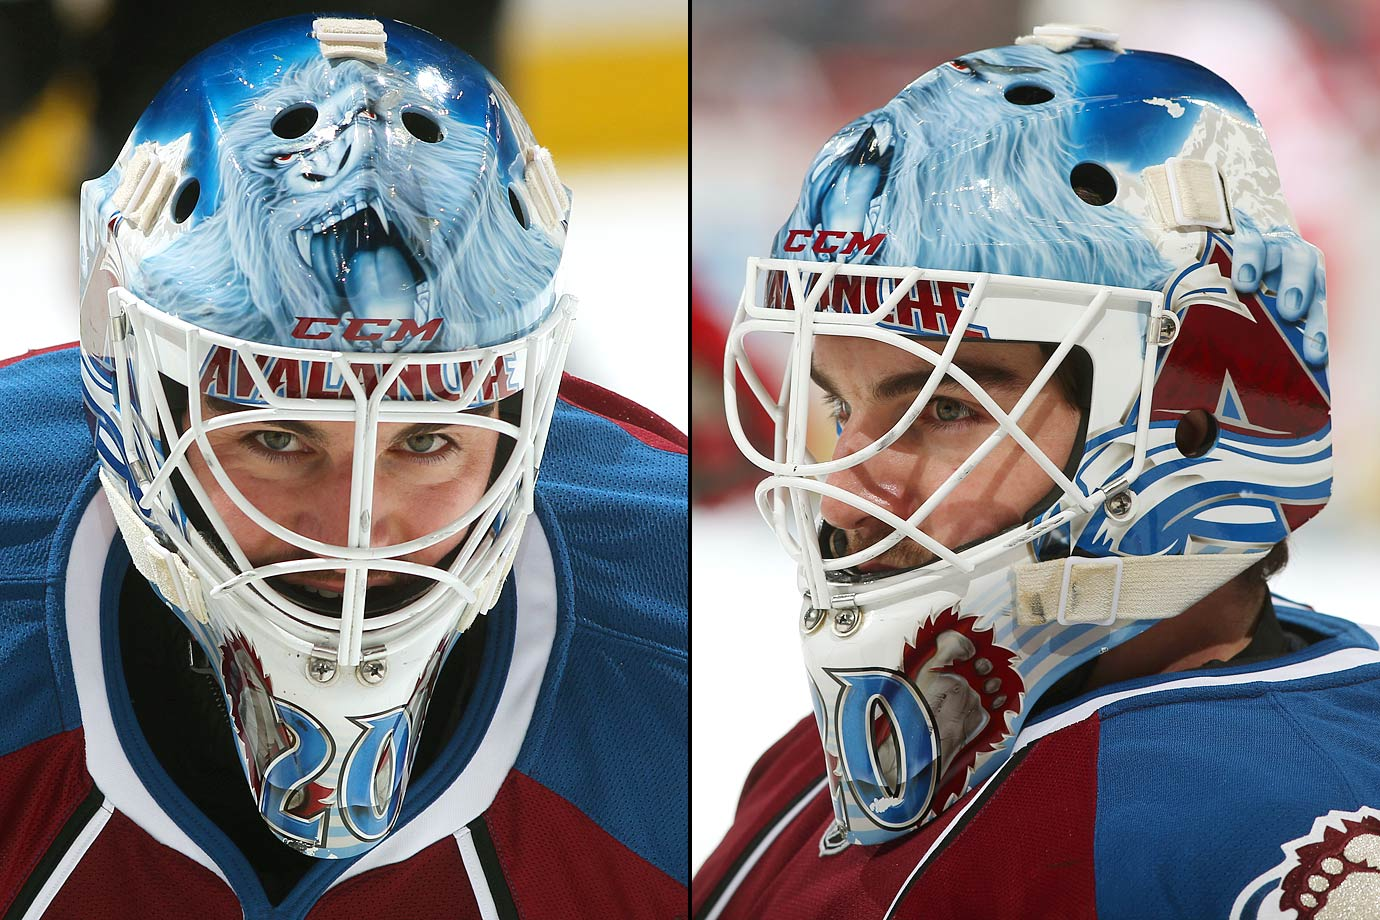 Jean Sebastien Giguere channelling his inner Yeti whenever the Colorado Avalanche wore their third jerseys in 2013.